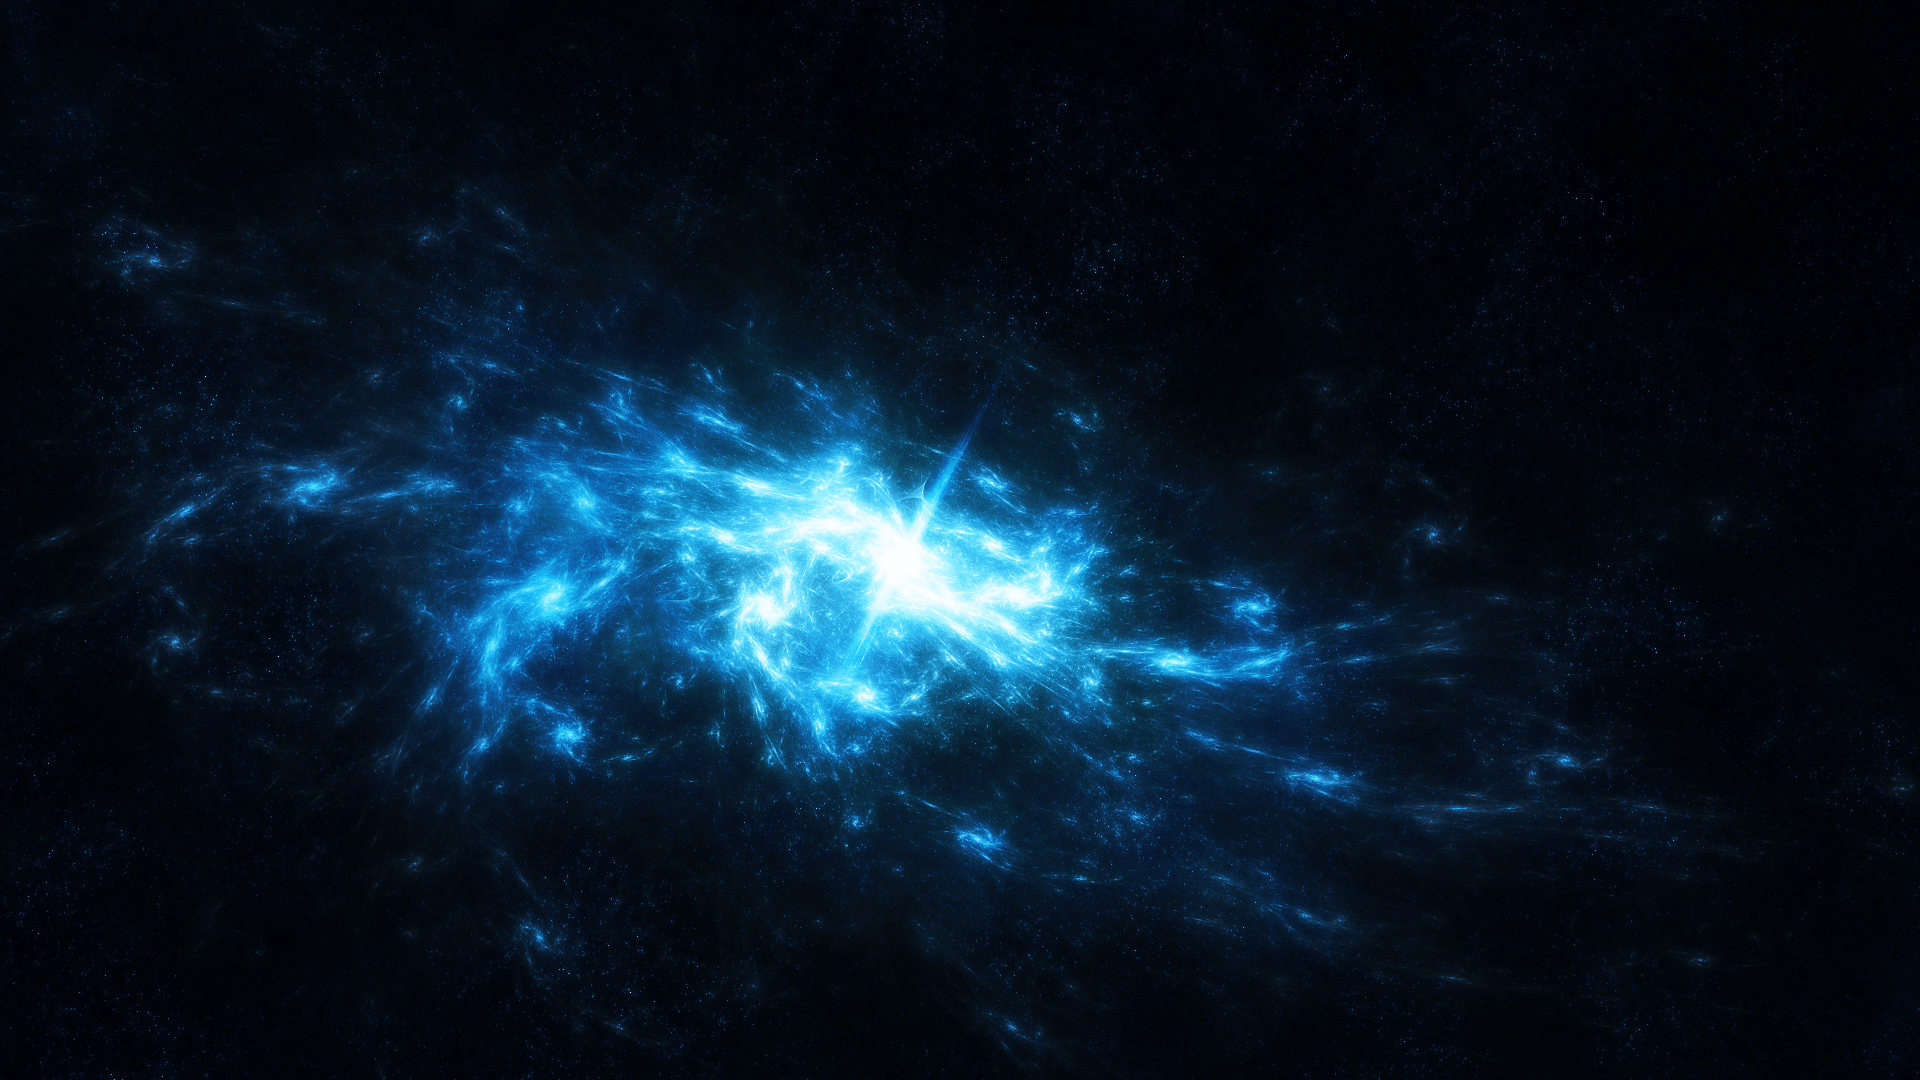 Blue Outer Space Wallpapers Top Free Blue Outer Space Backgrounds